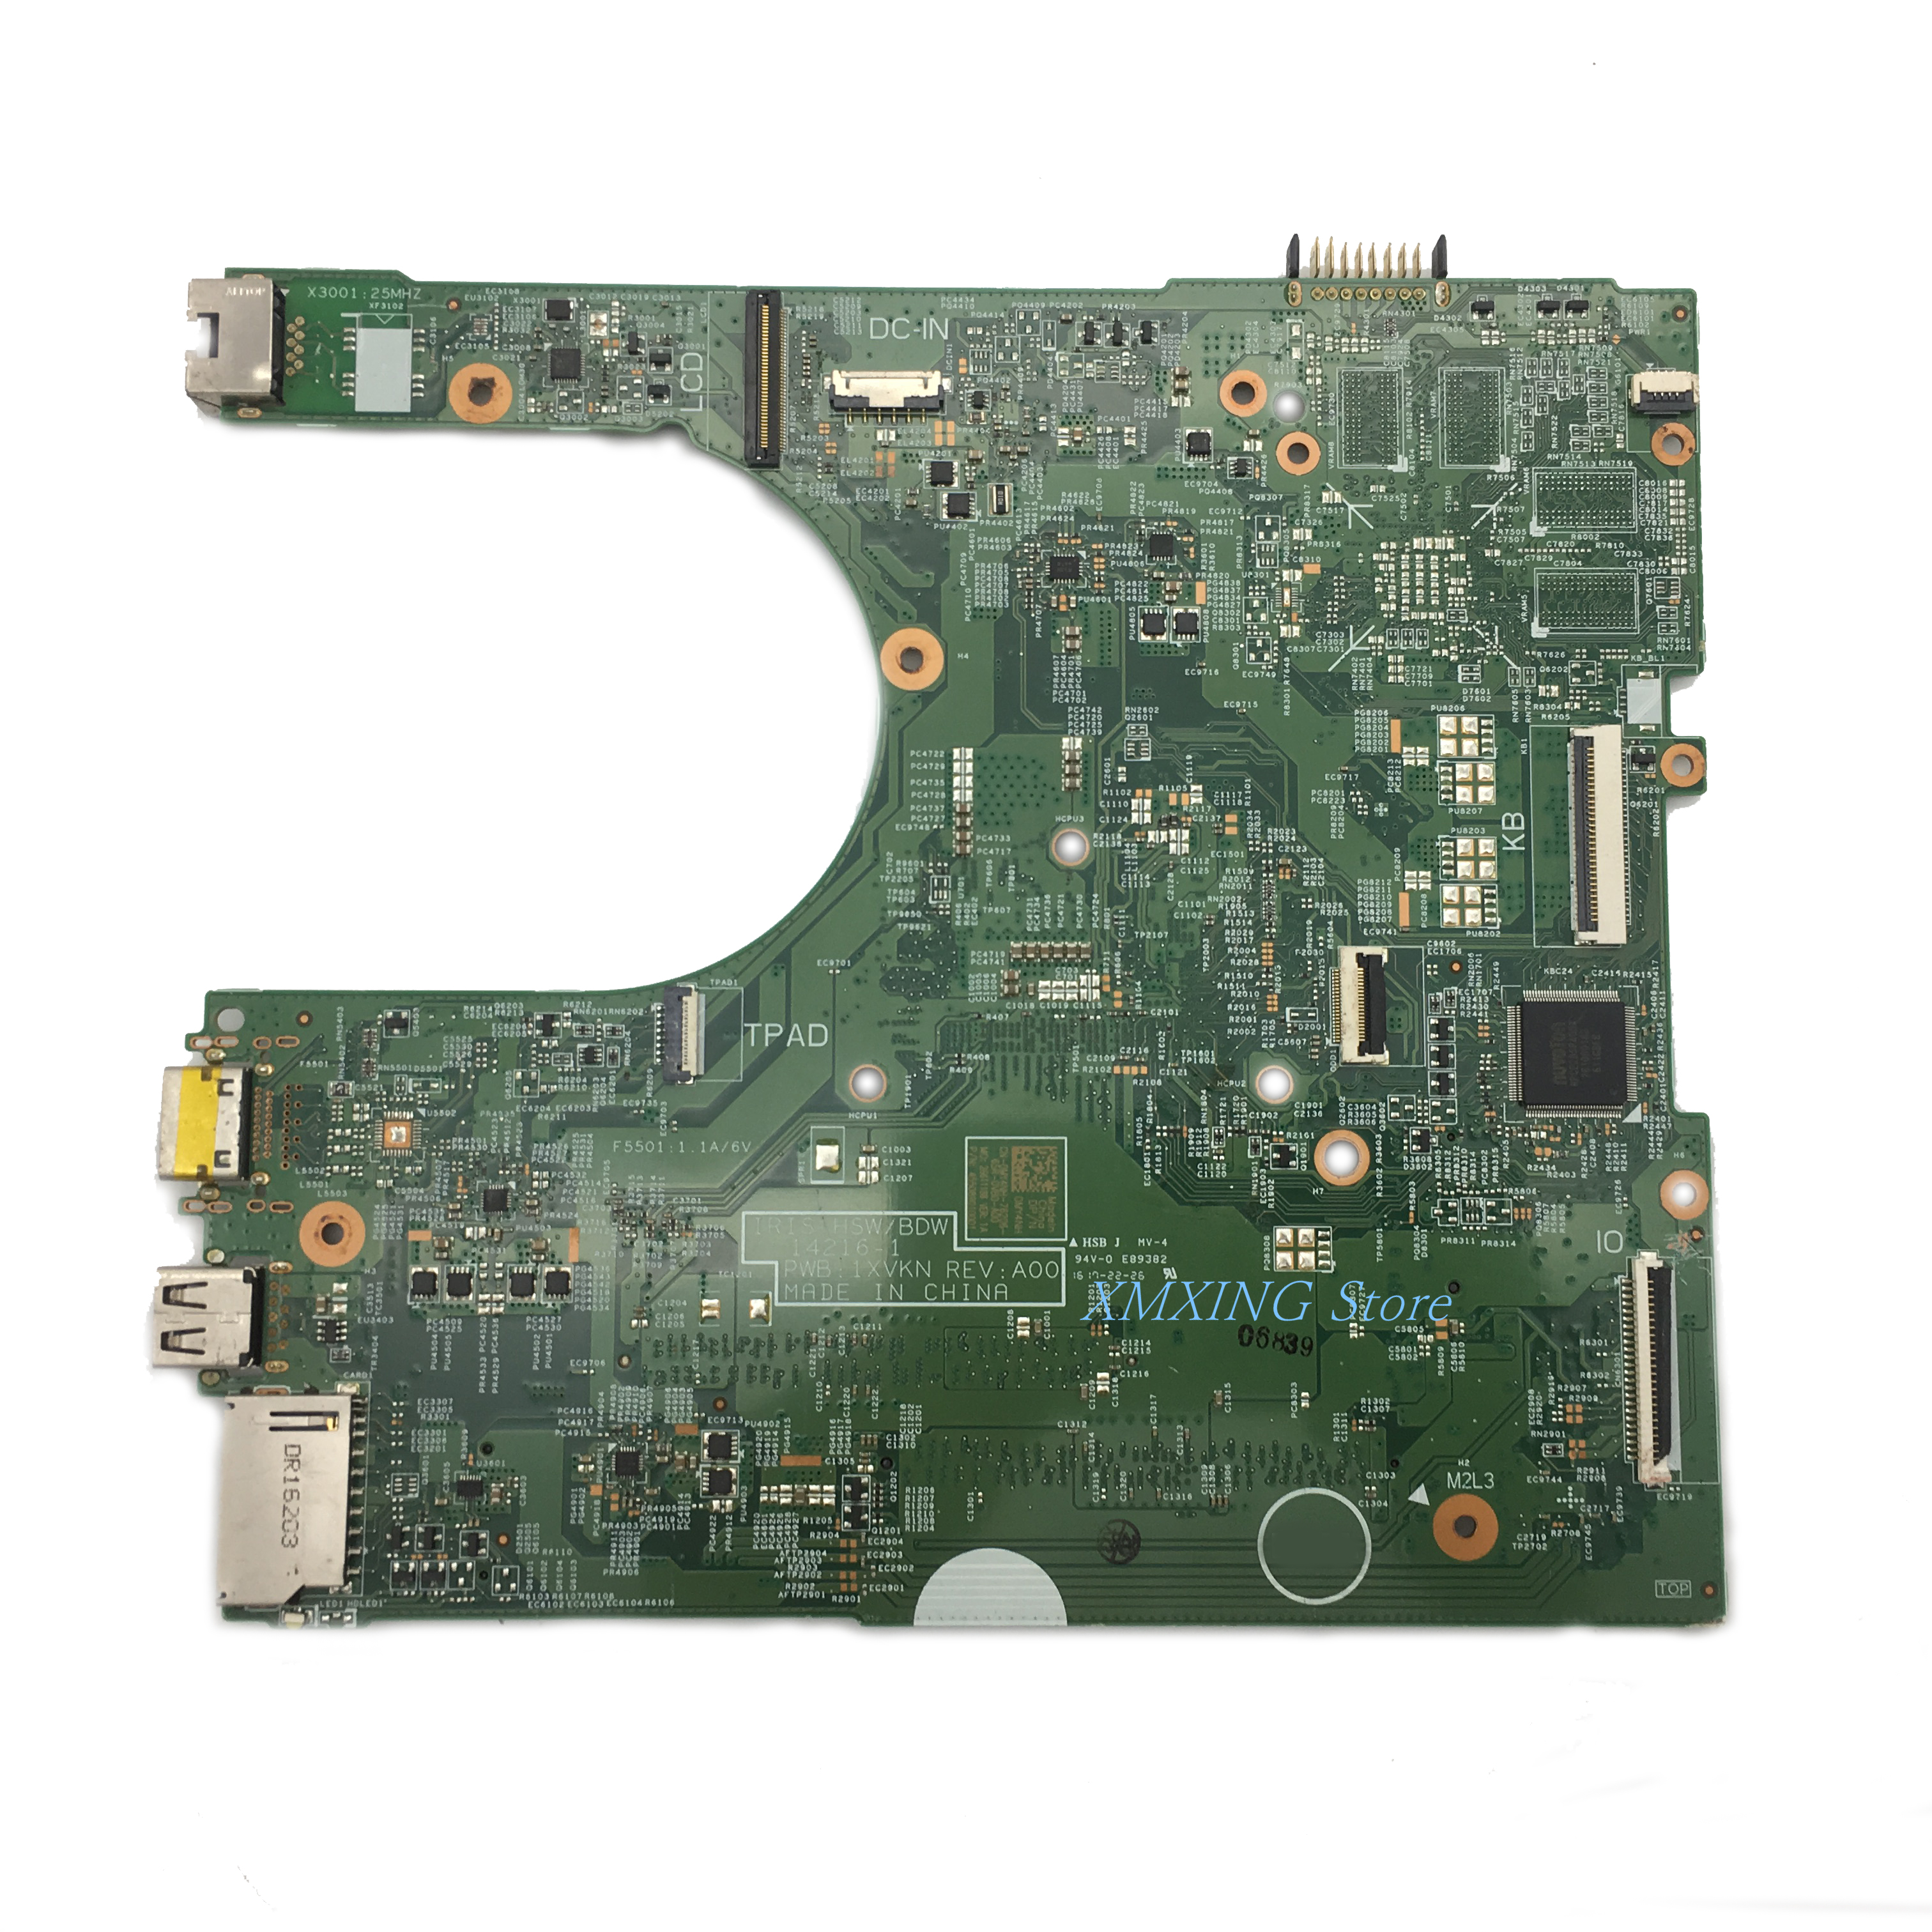 FULCOL For DELL INSPIRON CPU I3 3458 3558 Laptop Motherboard CN-0MY4NH CN-0MNGP8 0MNGP8 0MY4NH MY4NH 14216-1 Tested 100% work 2